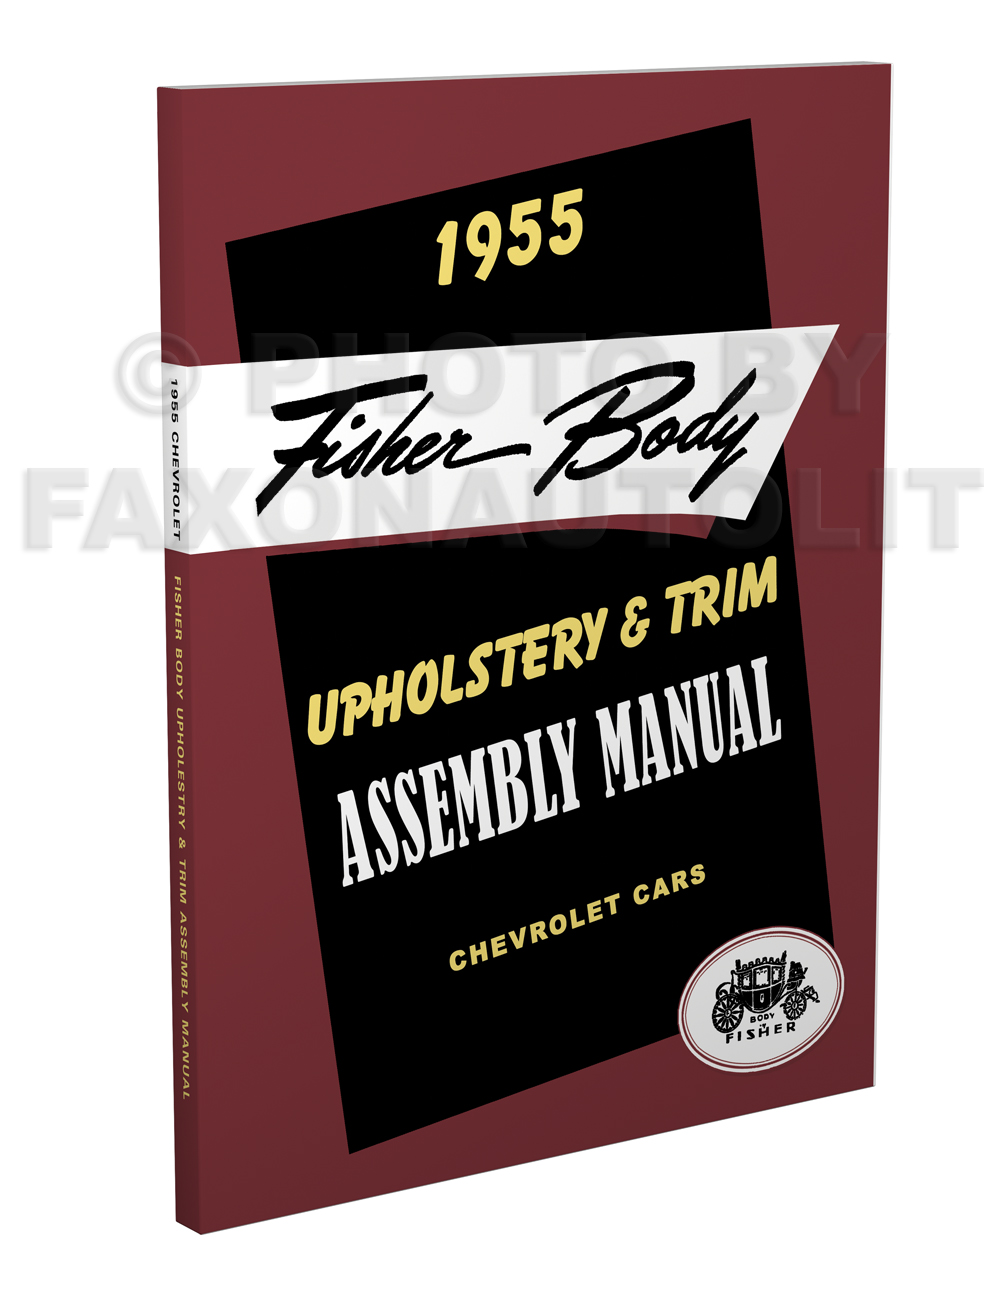 1955 Fisher Body Upholstery and Trim Assembly Manual Chevy Cars